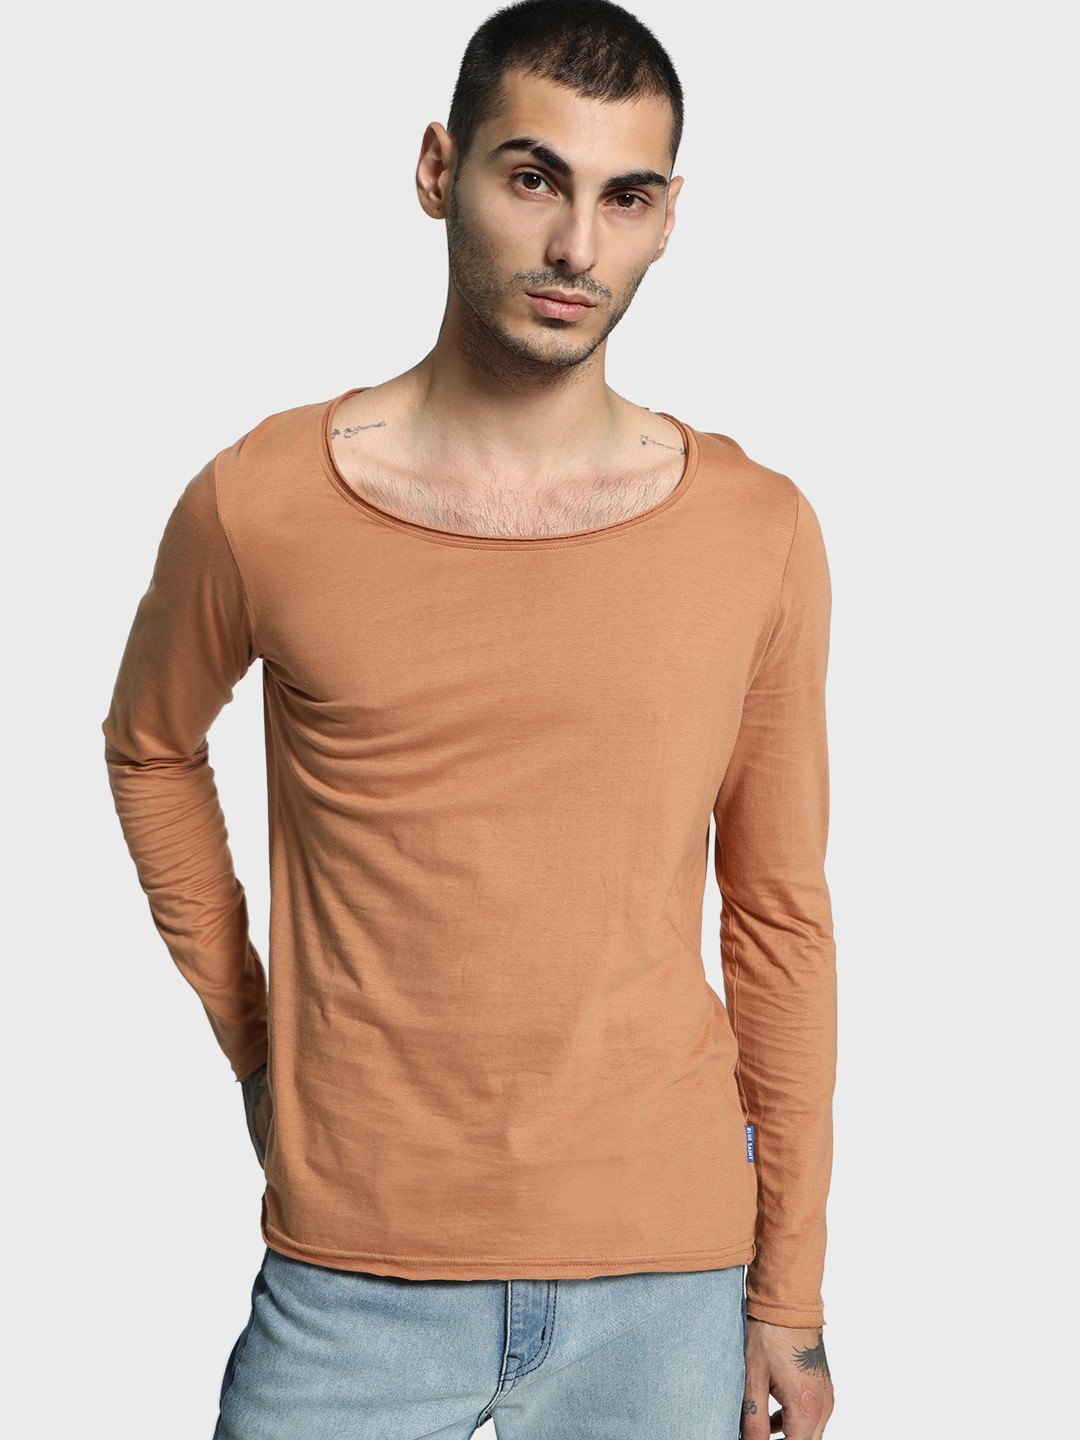 Blue Saint Brown Raw Edge Scoop Neck T-Shirt 1